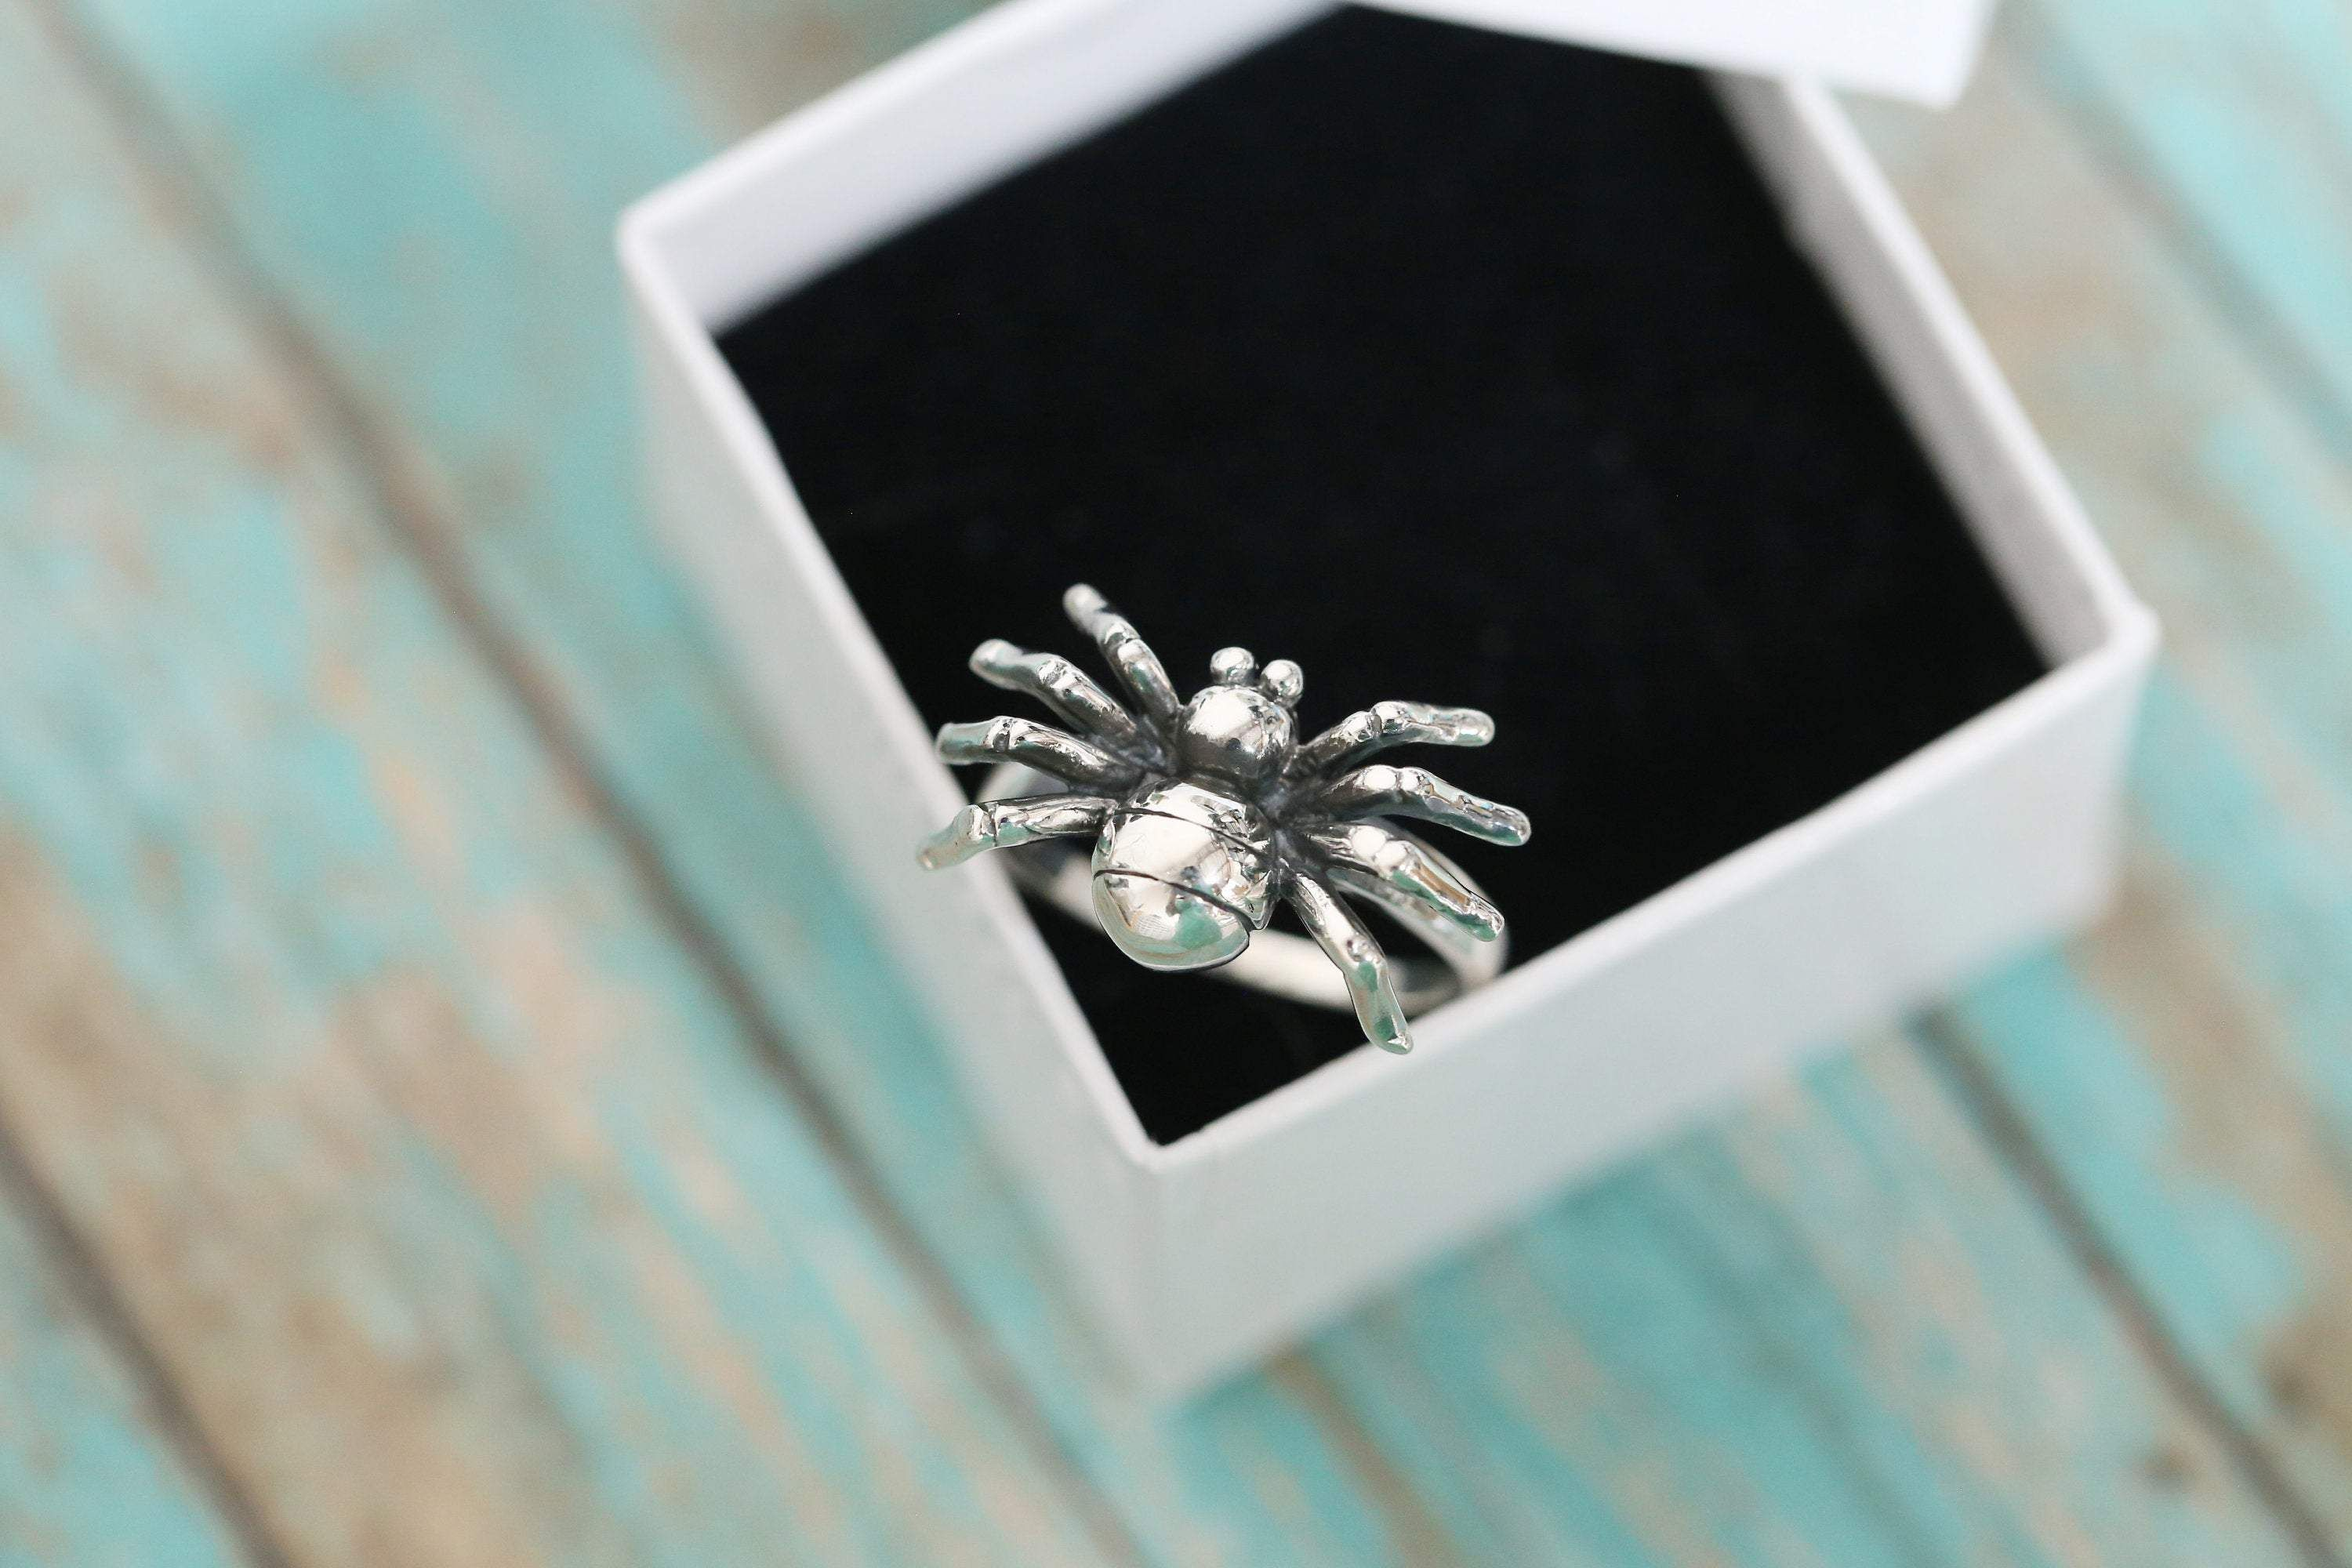 Can You Get Dna From Ashes After Cremation Sterling Silver Spider Cremation Ring Ash Platinum Pet Jewelry Gold Cremation Ring Funeral Silver In 2020 Memorial Jewelry Ashes Ashes Jewelry Cremation Ring